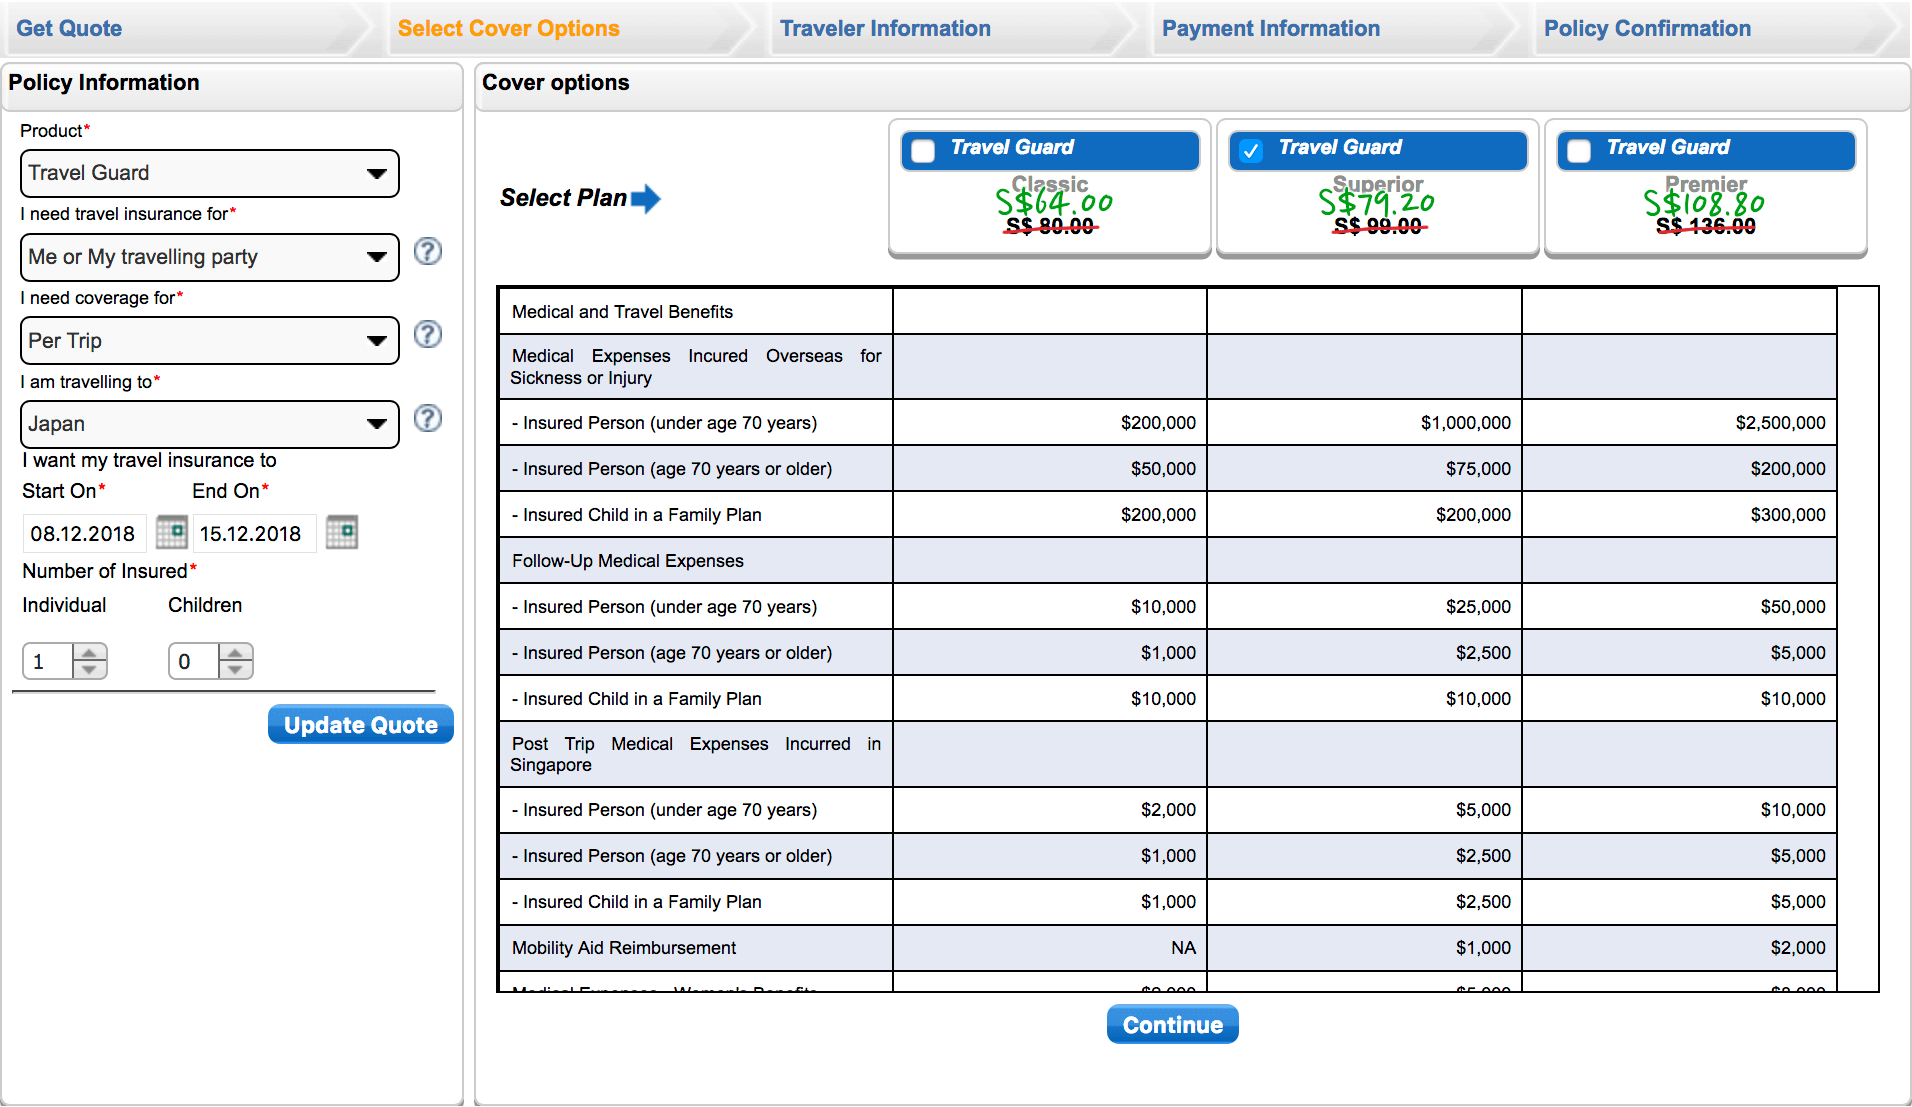 AIG Promo instant quote table before and after 20% off for a 8-day Japan trip